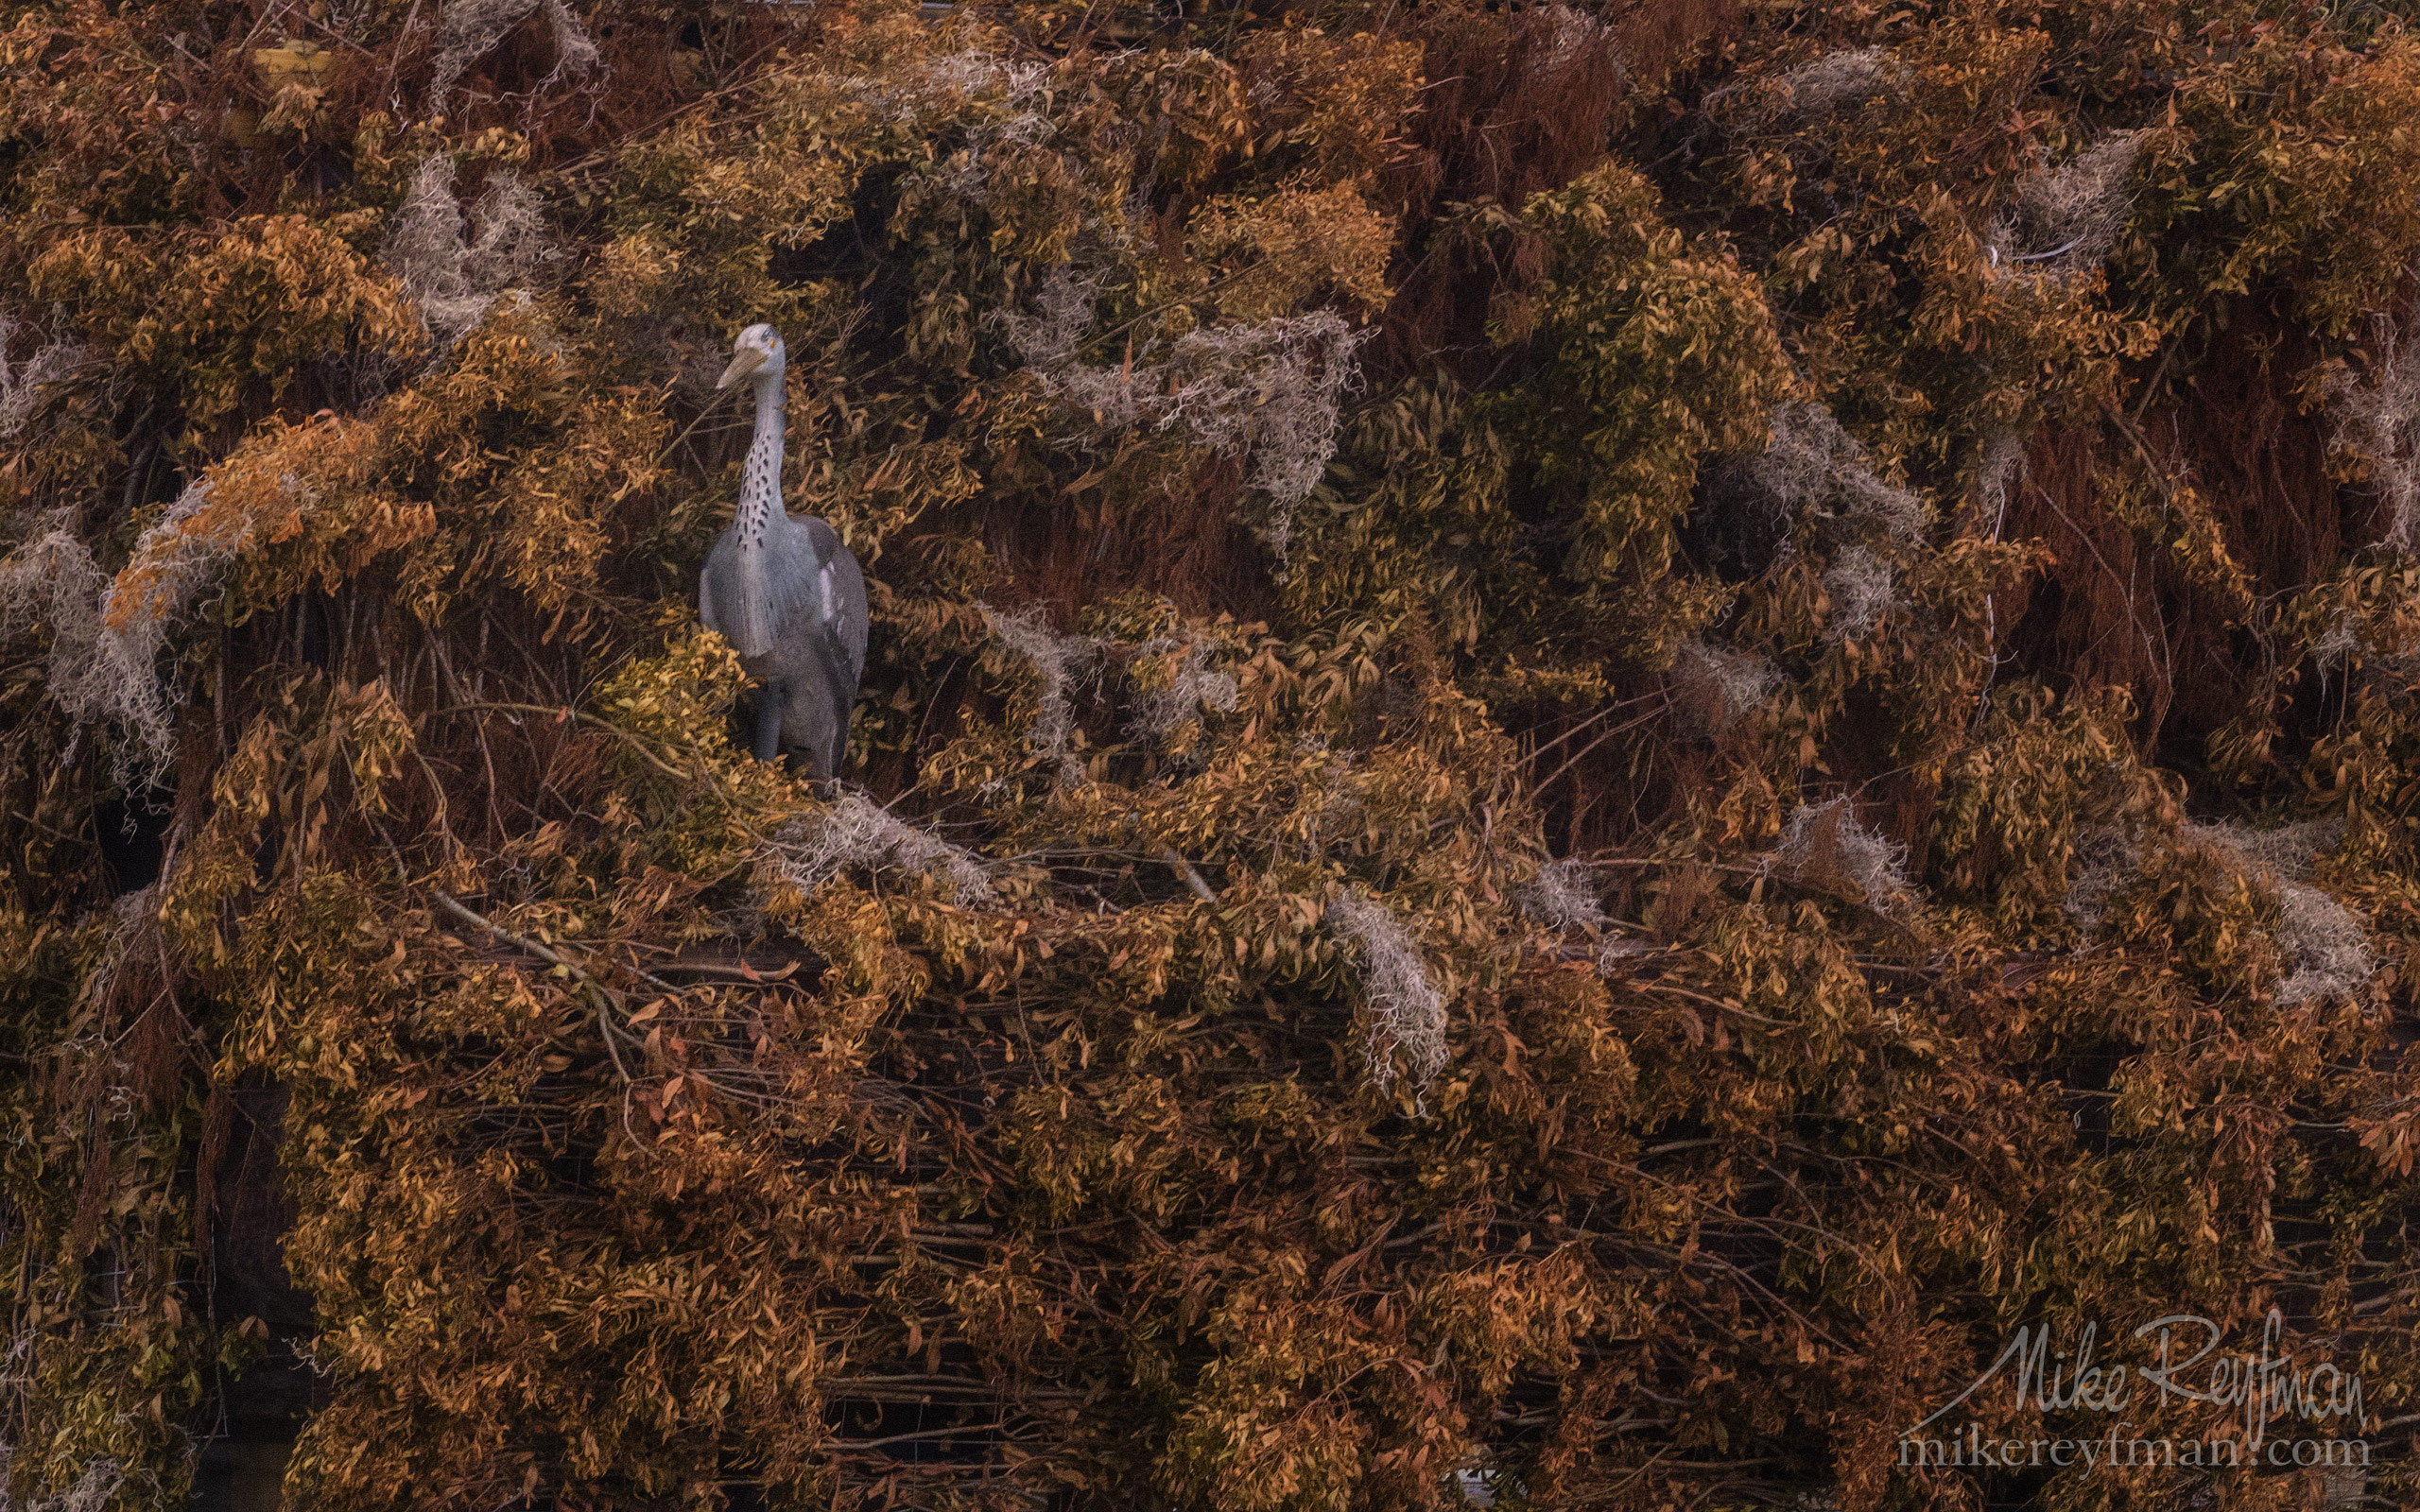 Hunting blind. Lake Martin, Louisiana, US 088-LT1-50A2502.jpg - Bold Cypress and Tupelo Trees in the swamps of Atchafalaya River Basin. Caddo, Martin and Fousse Lakes. Texas/Louisiana, USA. - Mike Reyfman Photography